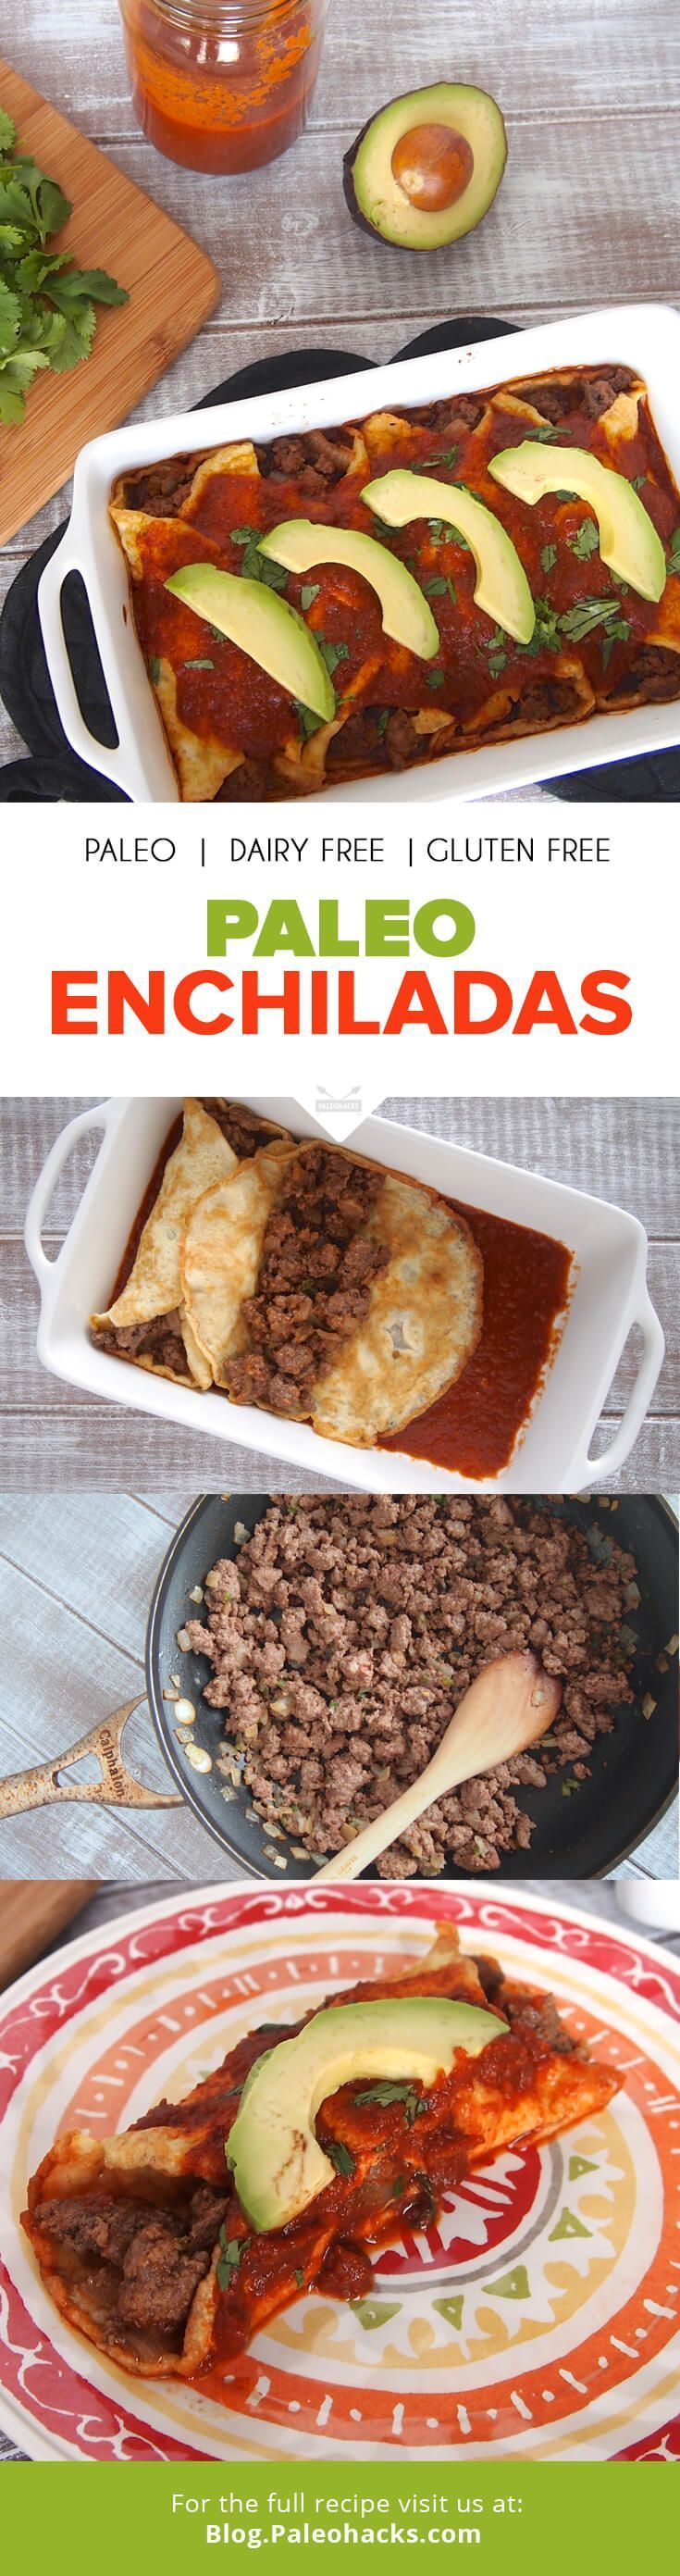 Mexican food may seem a bit out of reach on the Paleo diet, but this Paleo Enchiladas recipe uses grain-free tortillas to recreate an all time favorite. For the full recipe visit us here: paleo.co/... #paleohacks #paleo #mexicanfoodrecipes